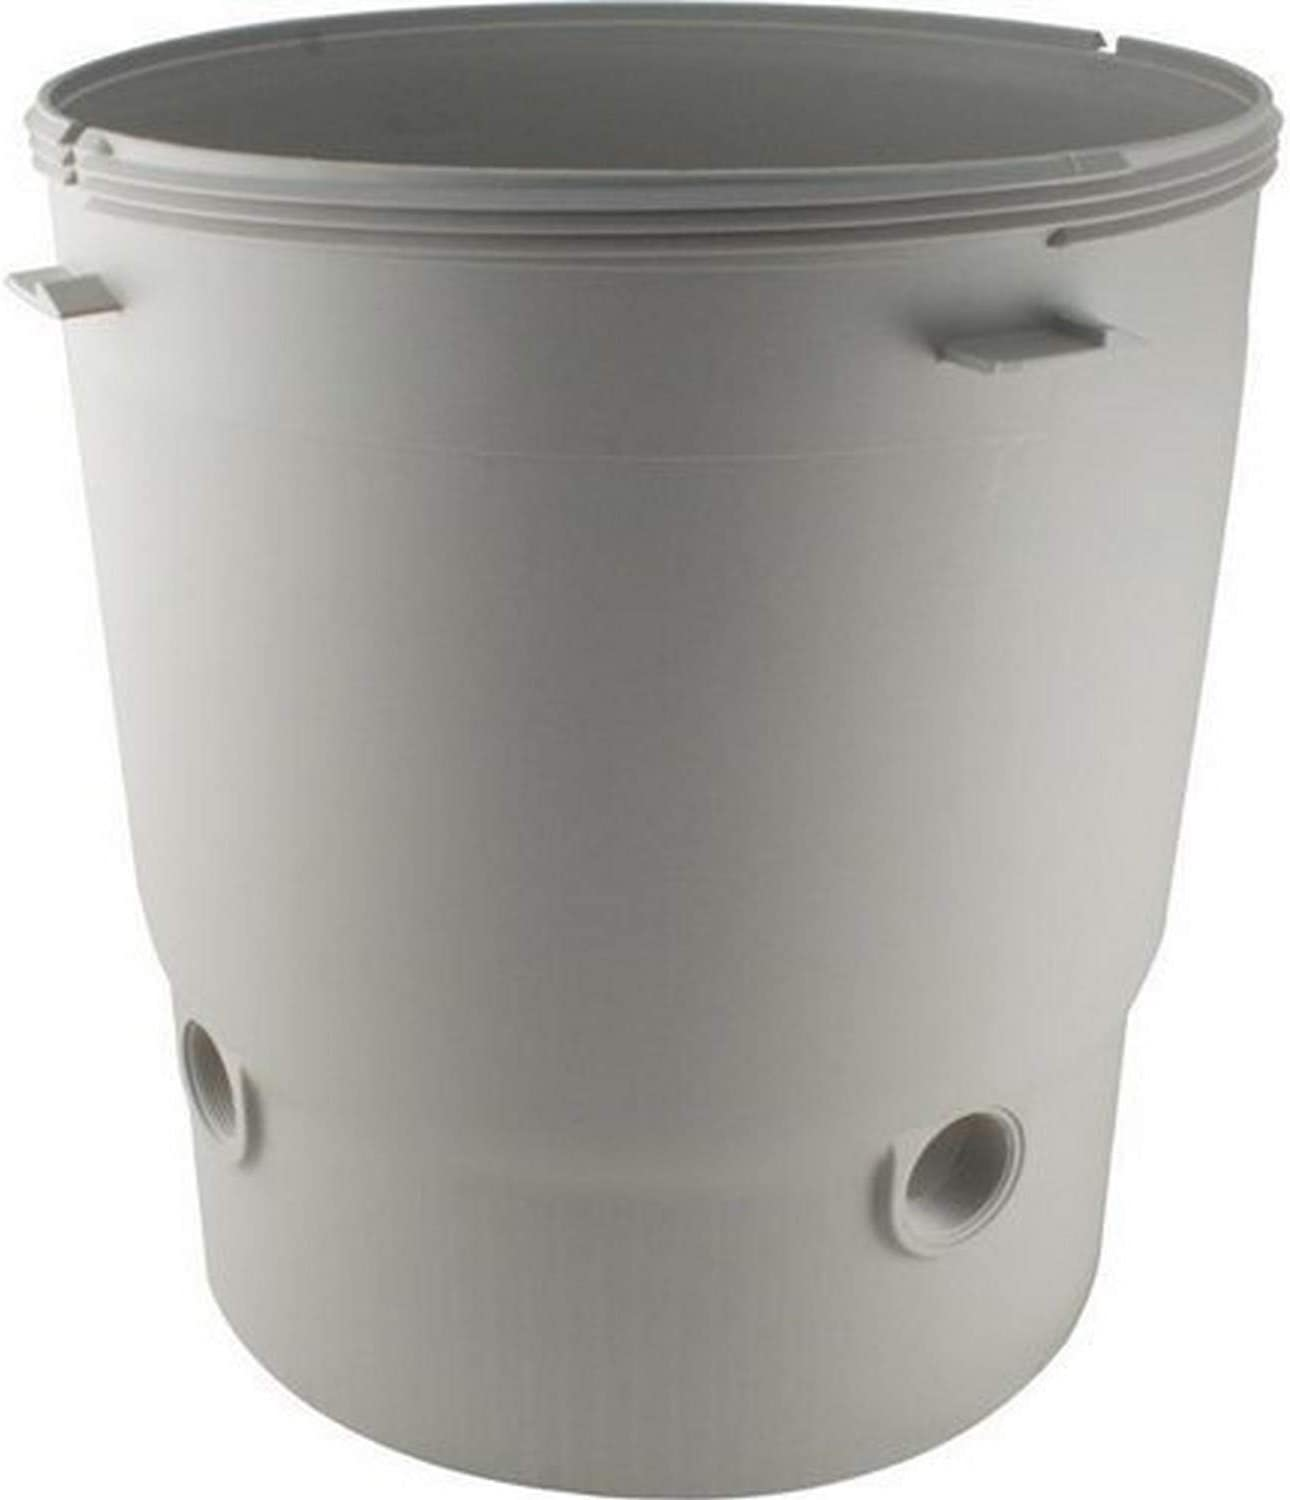 Hayward CCX1000B Lower Body Filter Replacement for Hayward Xstream Filtration Series CC10092S and CC15093S